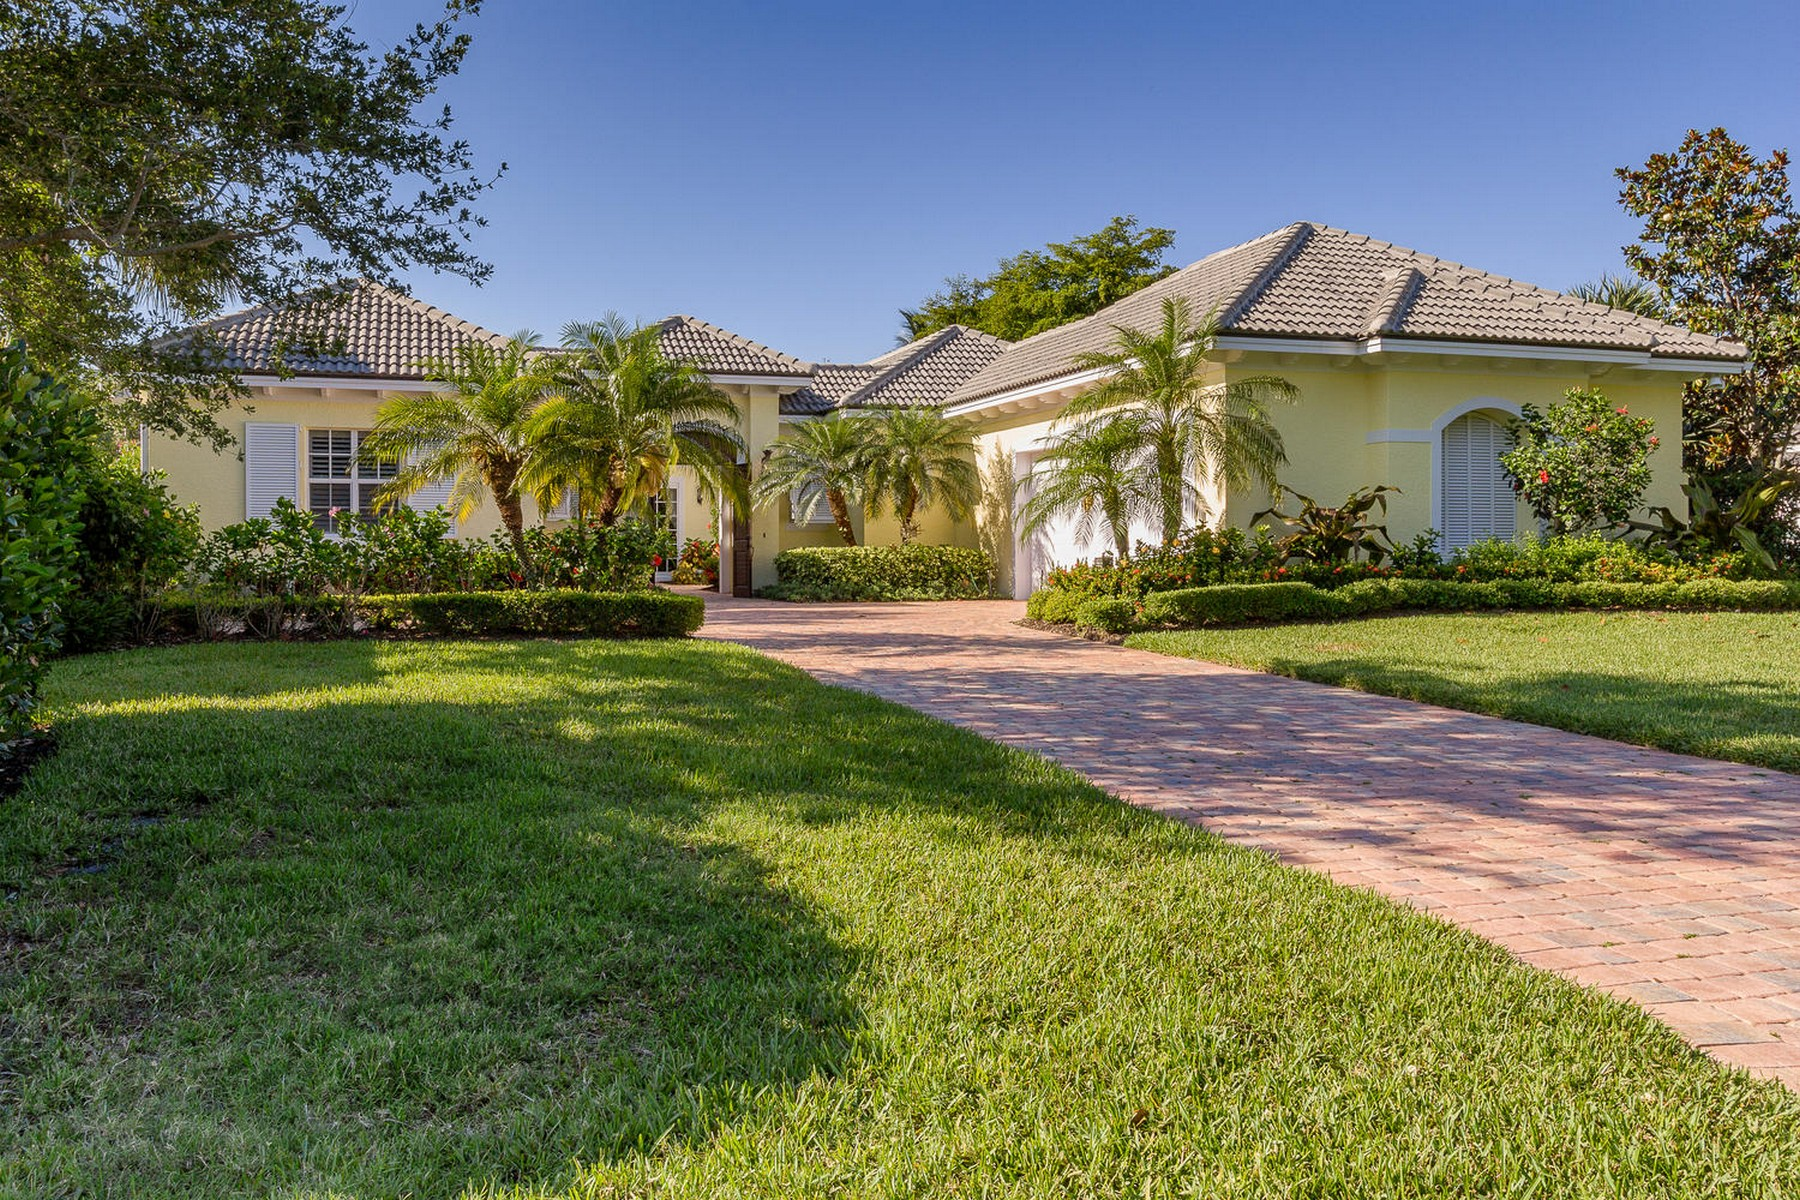 Single Family Home for Sale at Elegant and Gorgeous Courtyard Home 280 Lakeview Way Vero Beach, Florida, 32963 United States